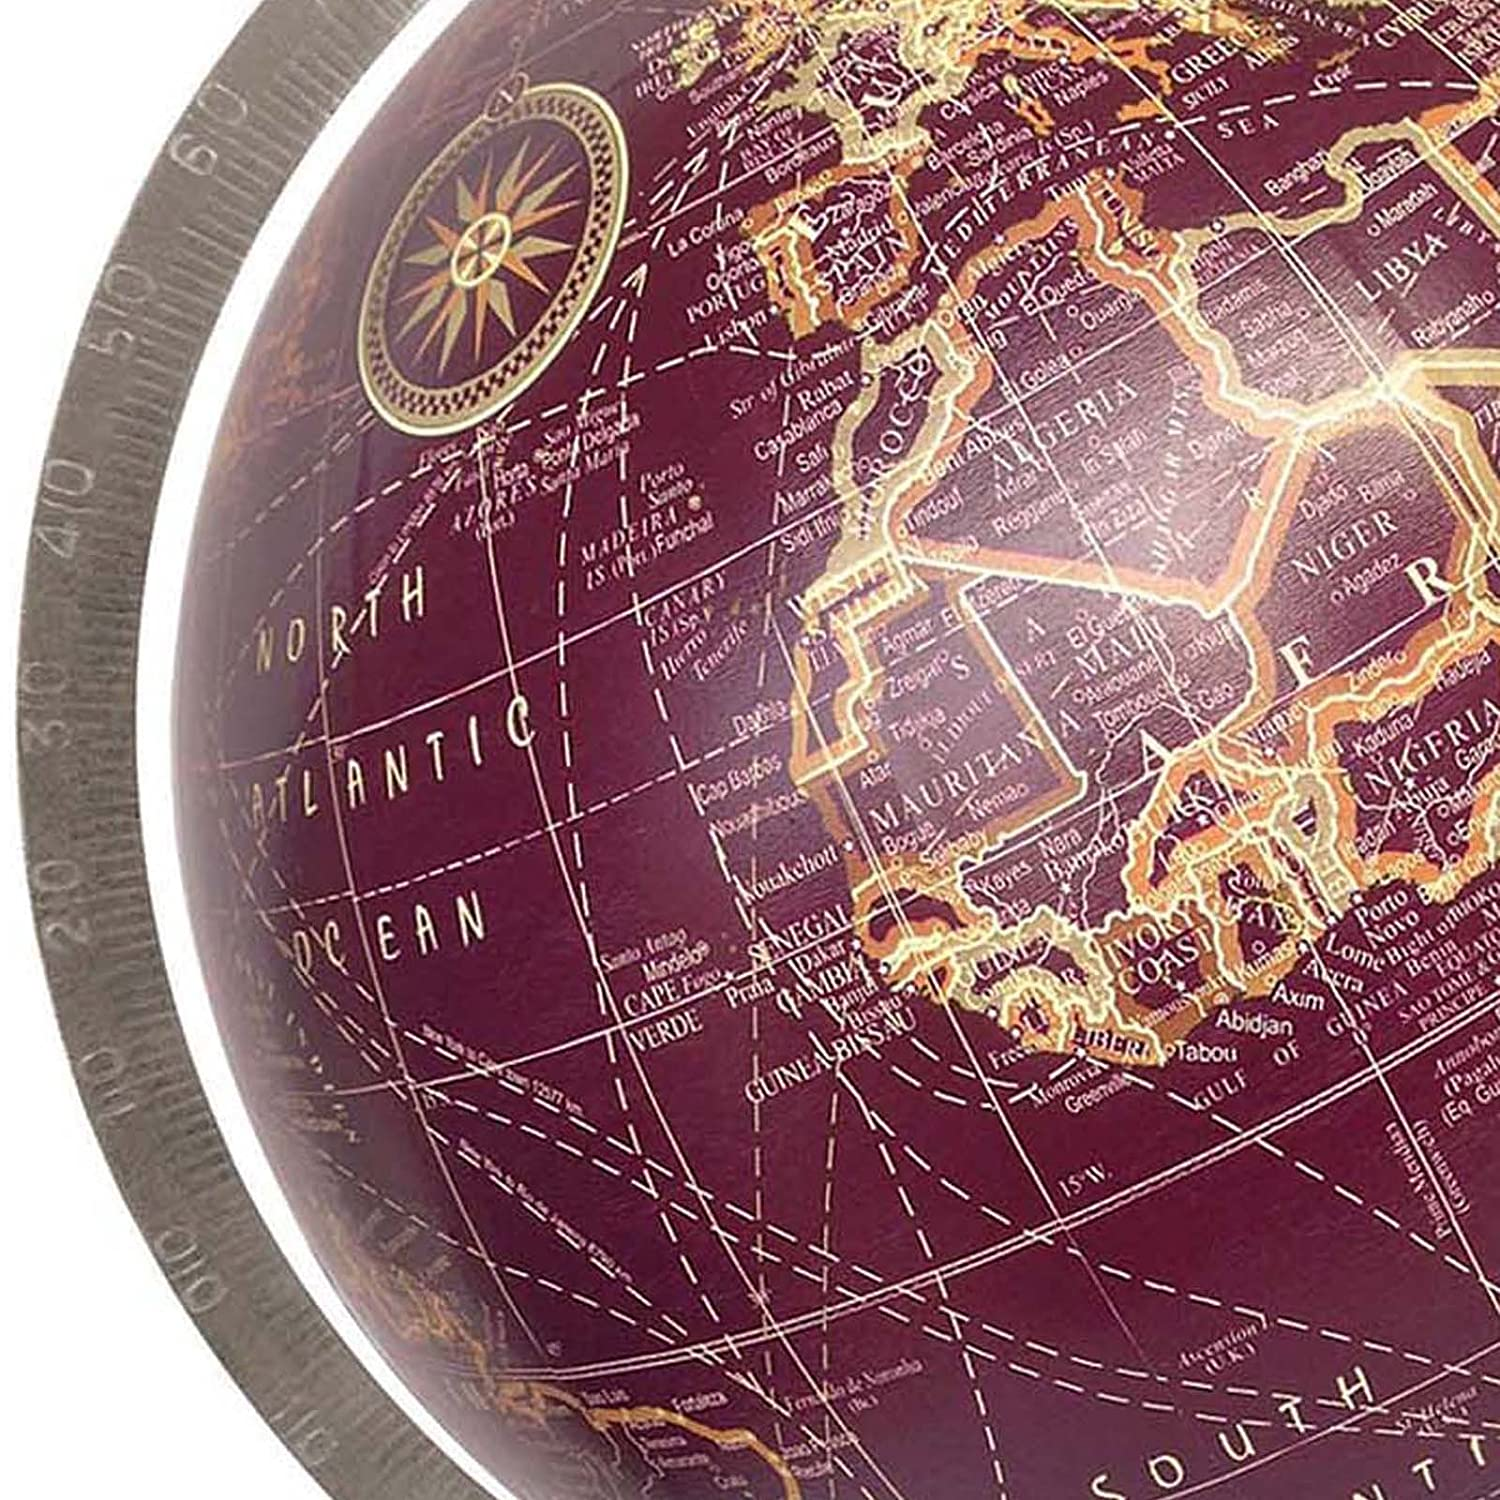 Amazon.com : Rotating Decorative Globe Ocean World Geography Earth Office Table Decor : Office Products